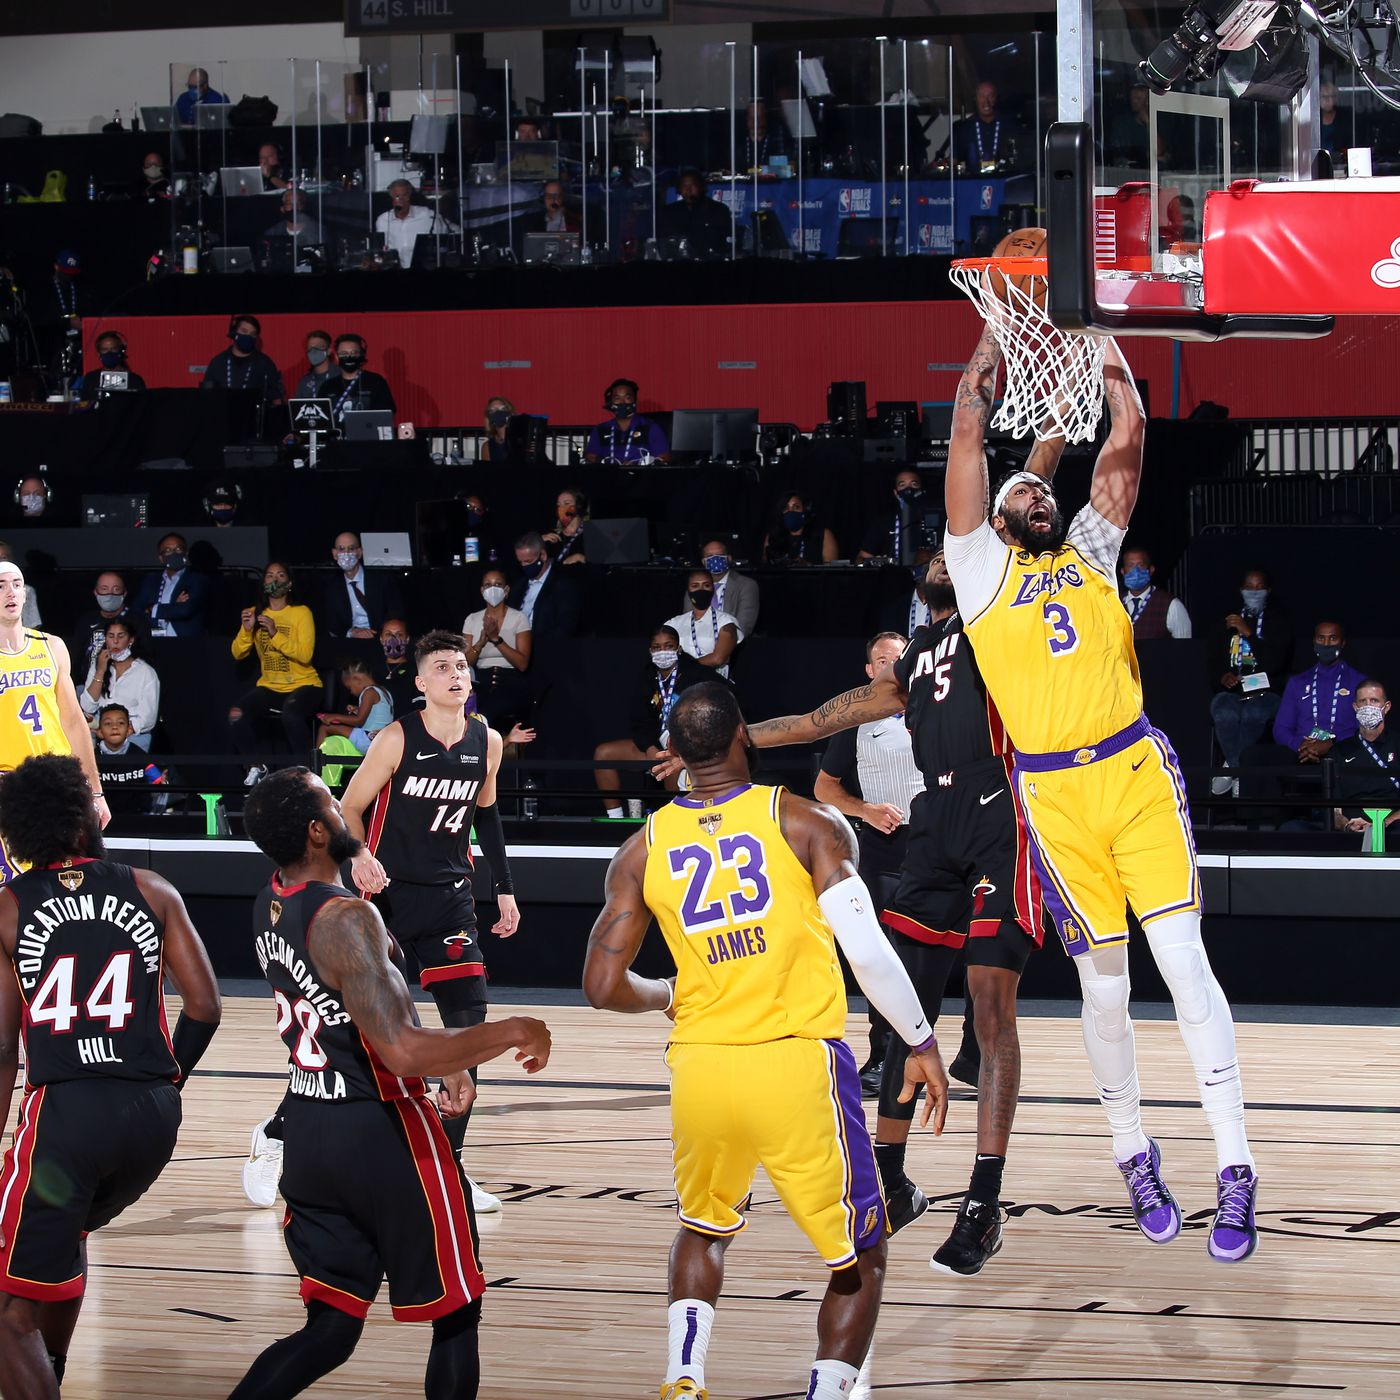 Lakers vs. Heat Final Score: L.A. too hot to handle in Game 1 win - Silver Screen and Roll